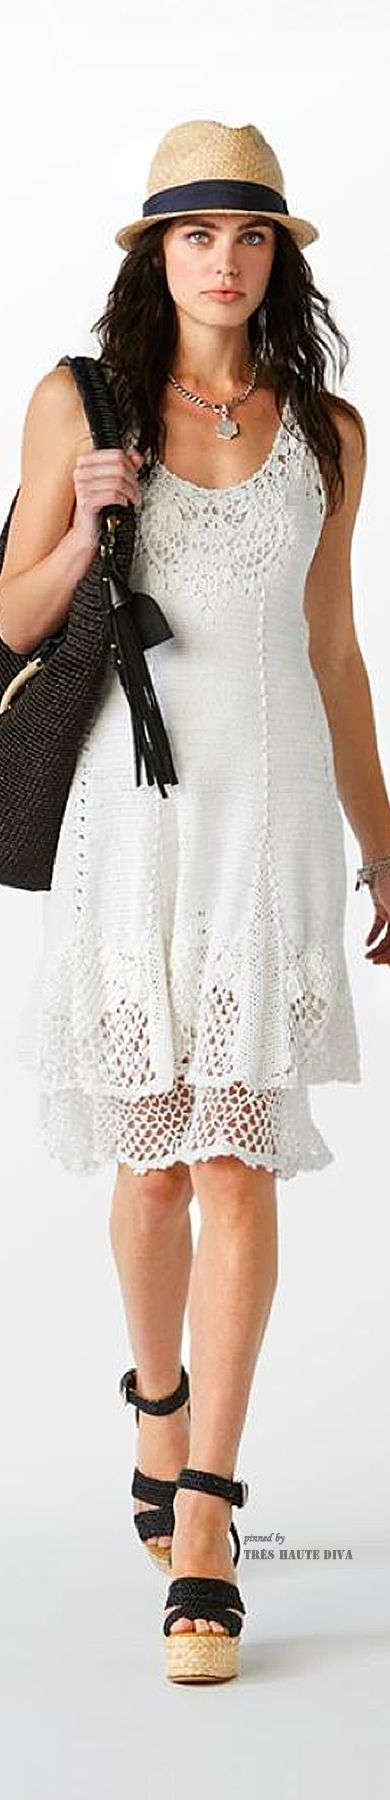 #NYFW Polo by Ralph Lauren Spring 2015-Fedora done up romantic style with crochet dress, very cool